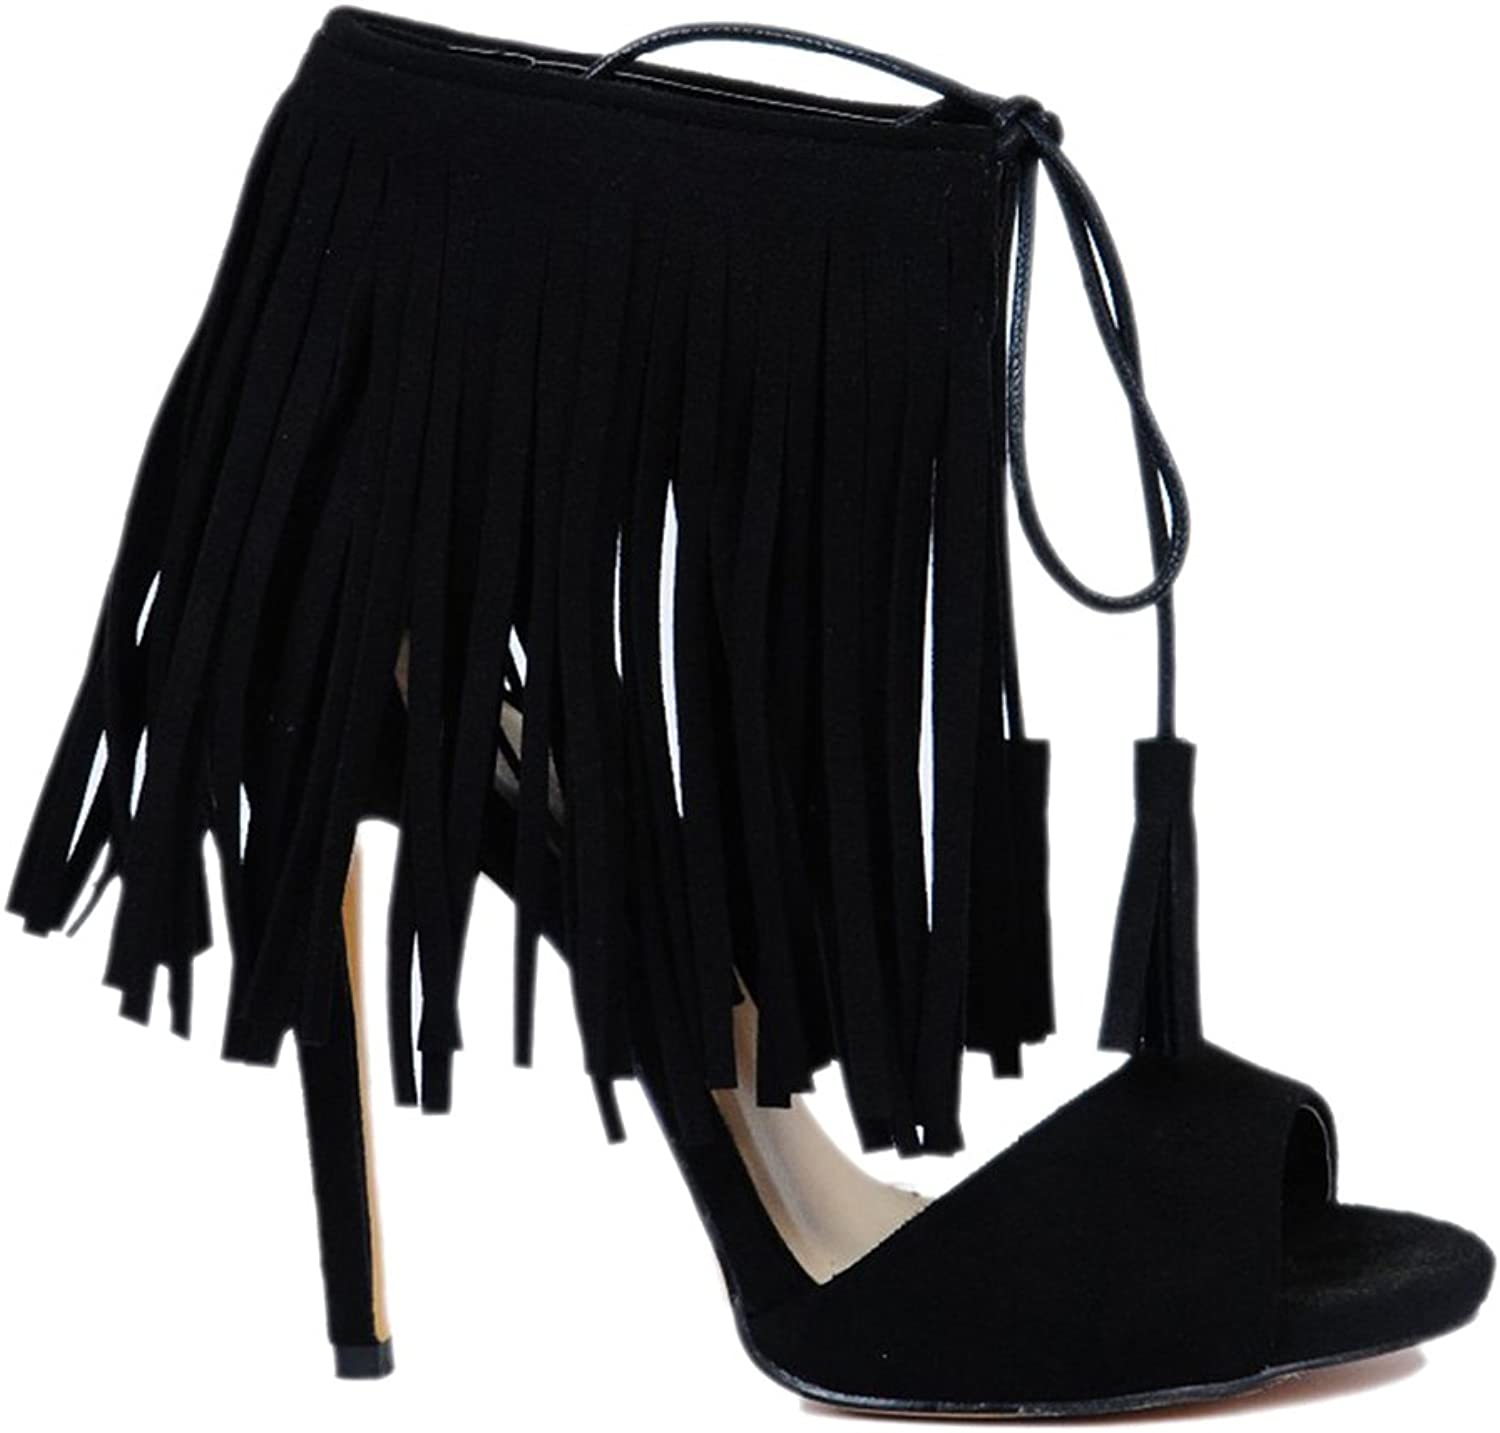 Women's Fringed Sandals Black Suede Fish Mouth High Heels Straps Women's Sandals Cool Boots Heeled Sandals Open Toe Sandals(Heel Height  6-8cm)